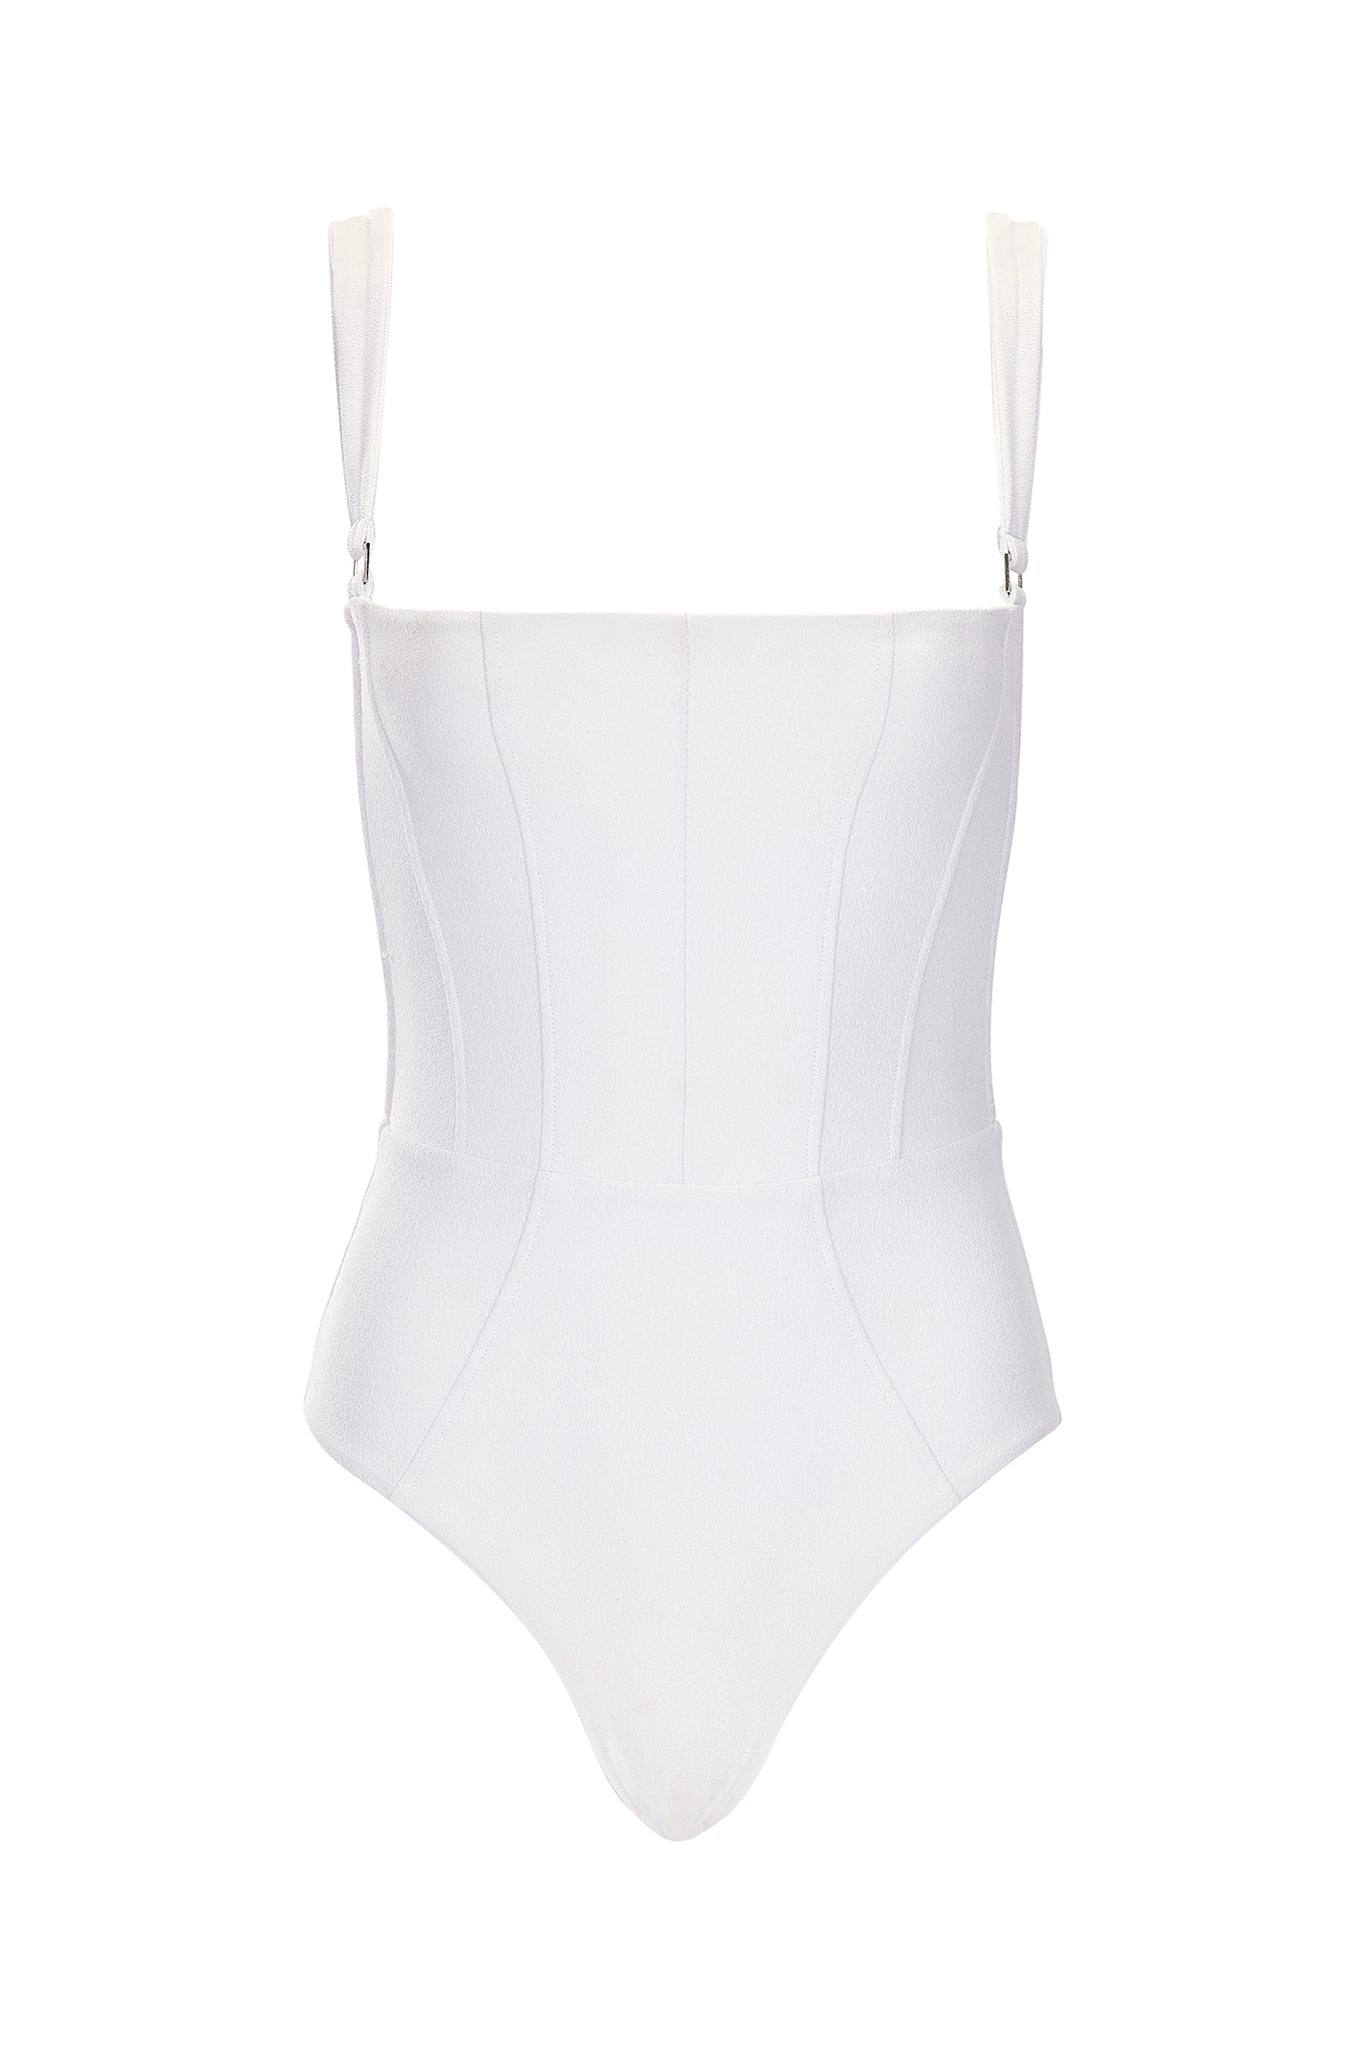 Hunter One Piece - Cream Crepe